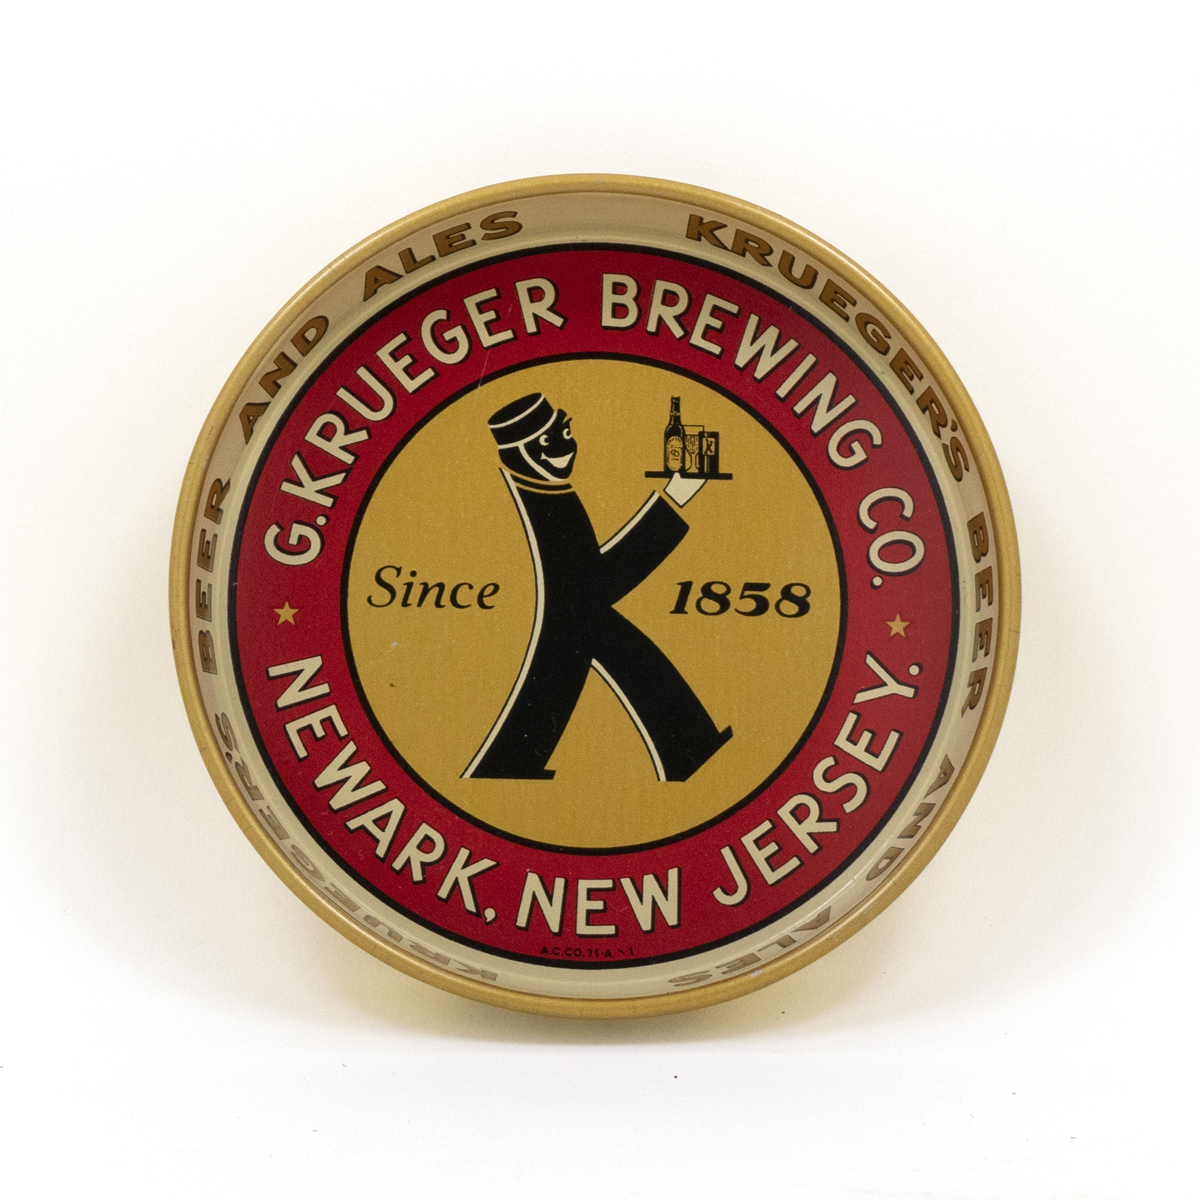 G. Krueger Brewing Co. Tip Tray